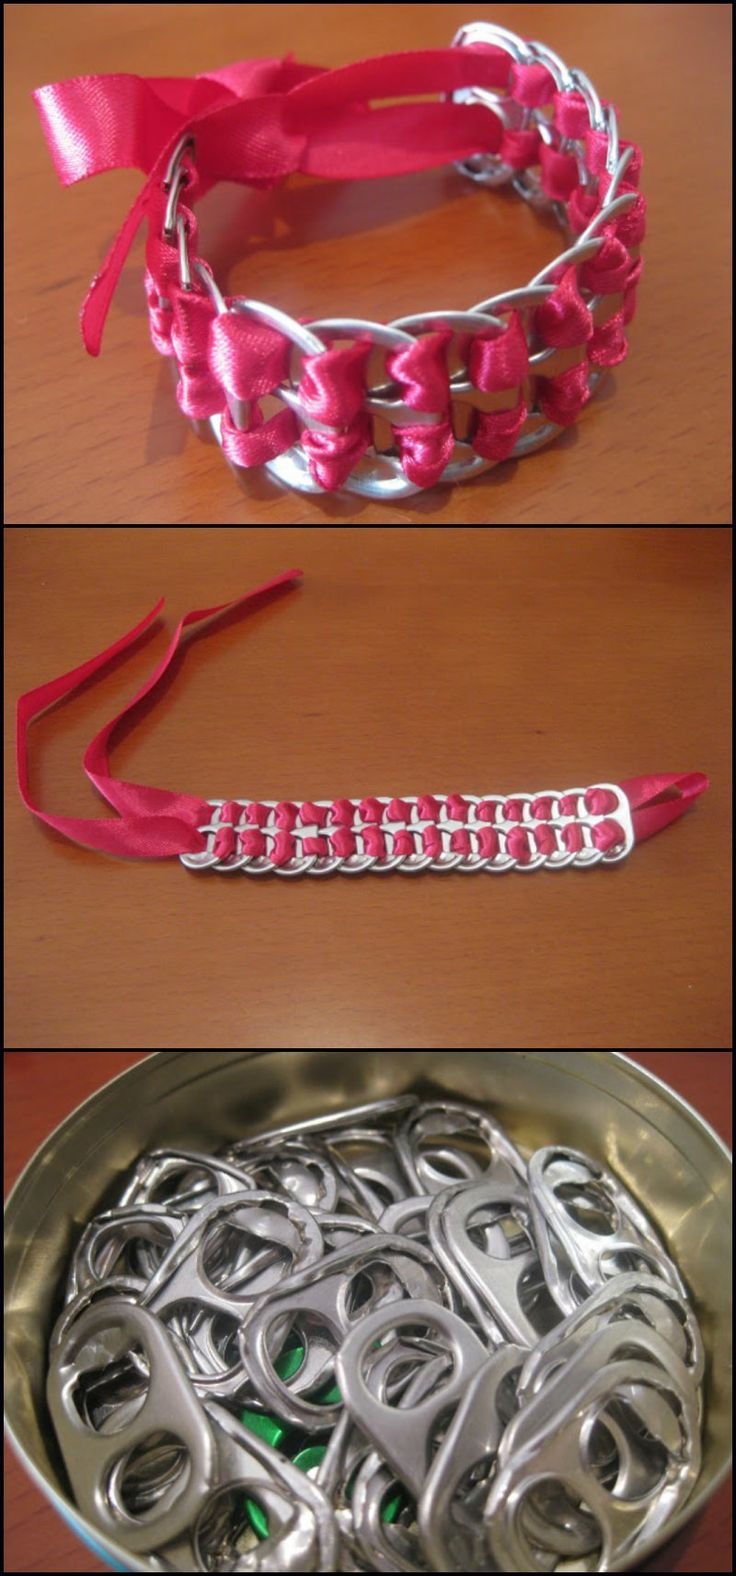 How To Make A Bracelet From Soda Pop Tabs  http://theownerbuildernetwork.co/py3s  With just a little resourcefulness and creativity, you can make some pretty accessories for you and your daughter.